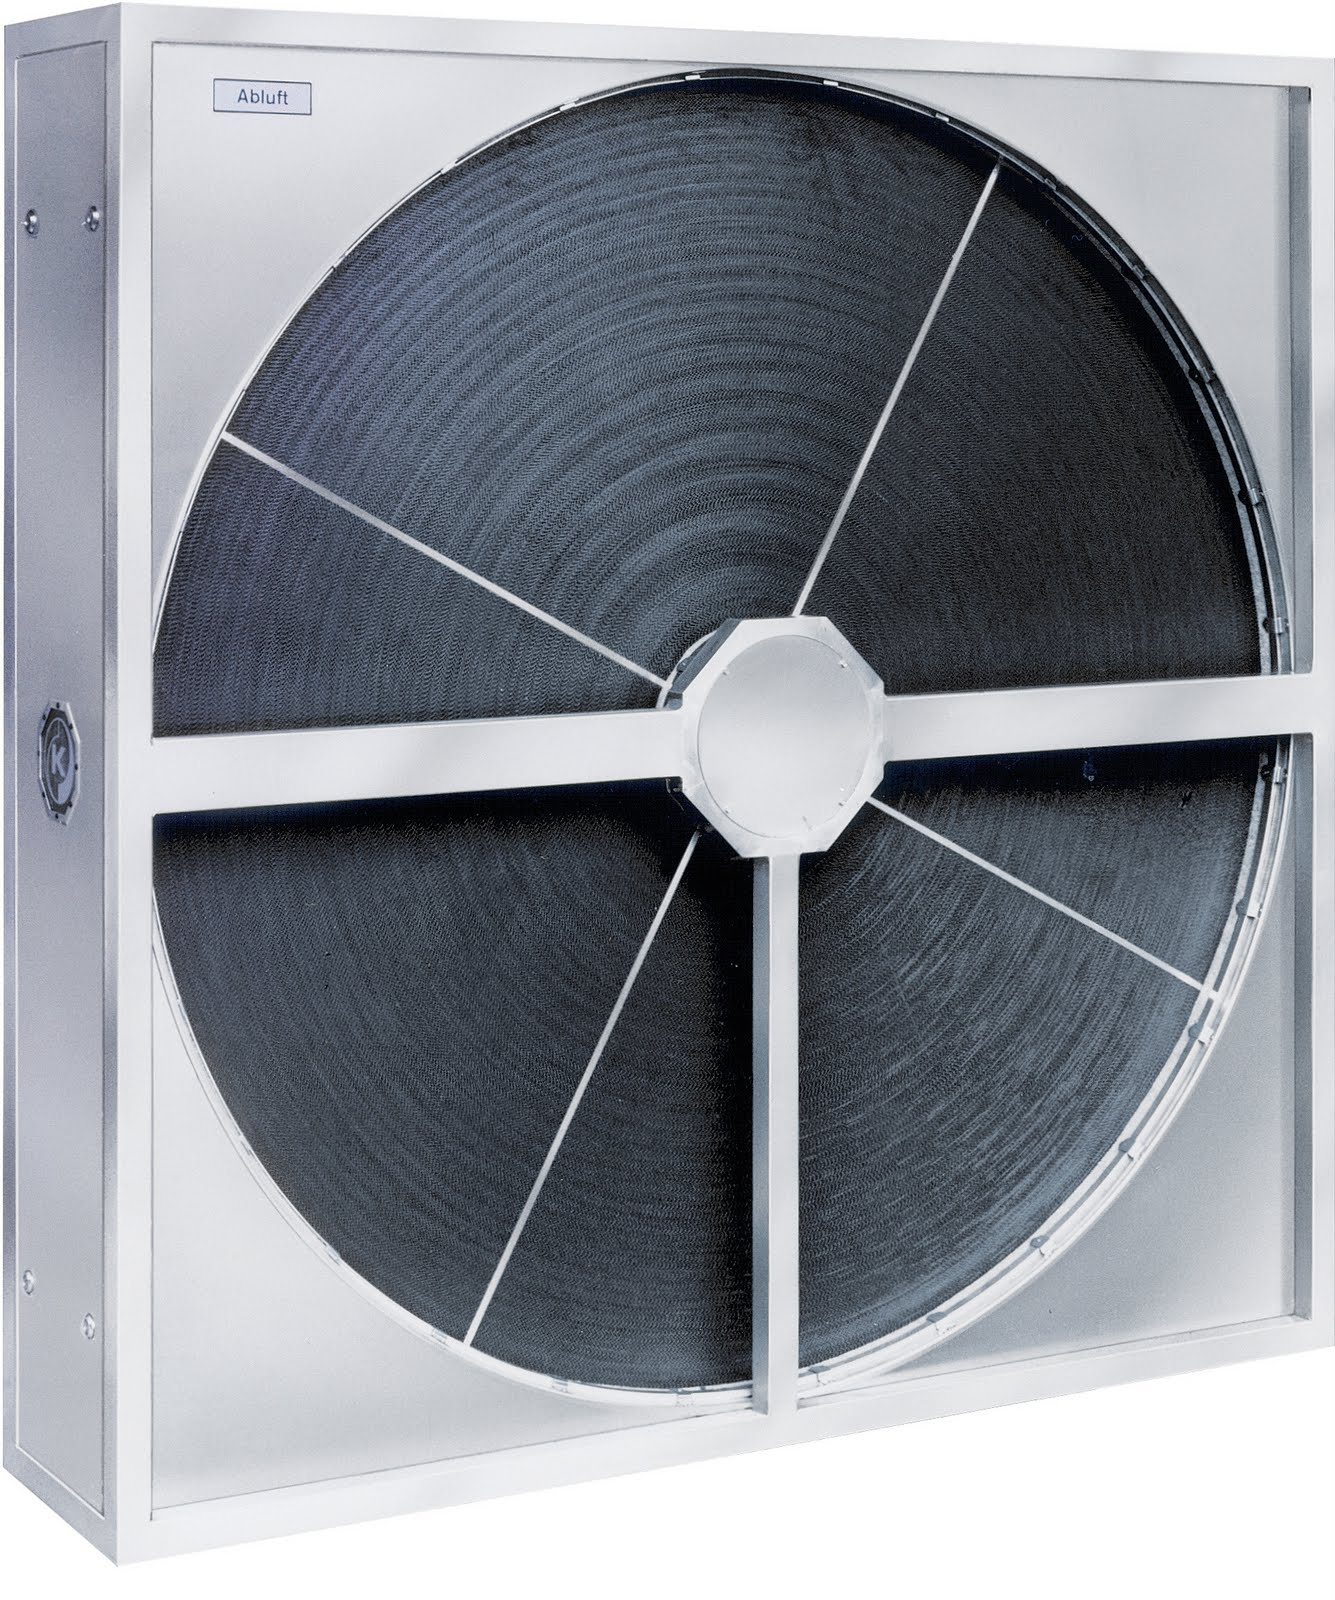 Reznor Warm Air Heaters Provide Cost Savings For